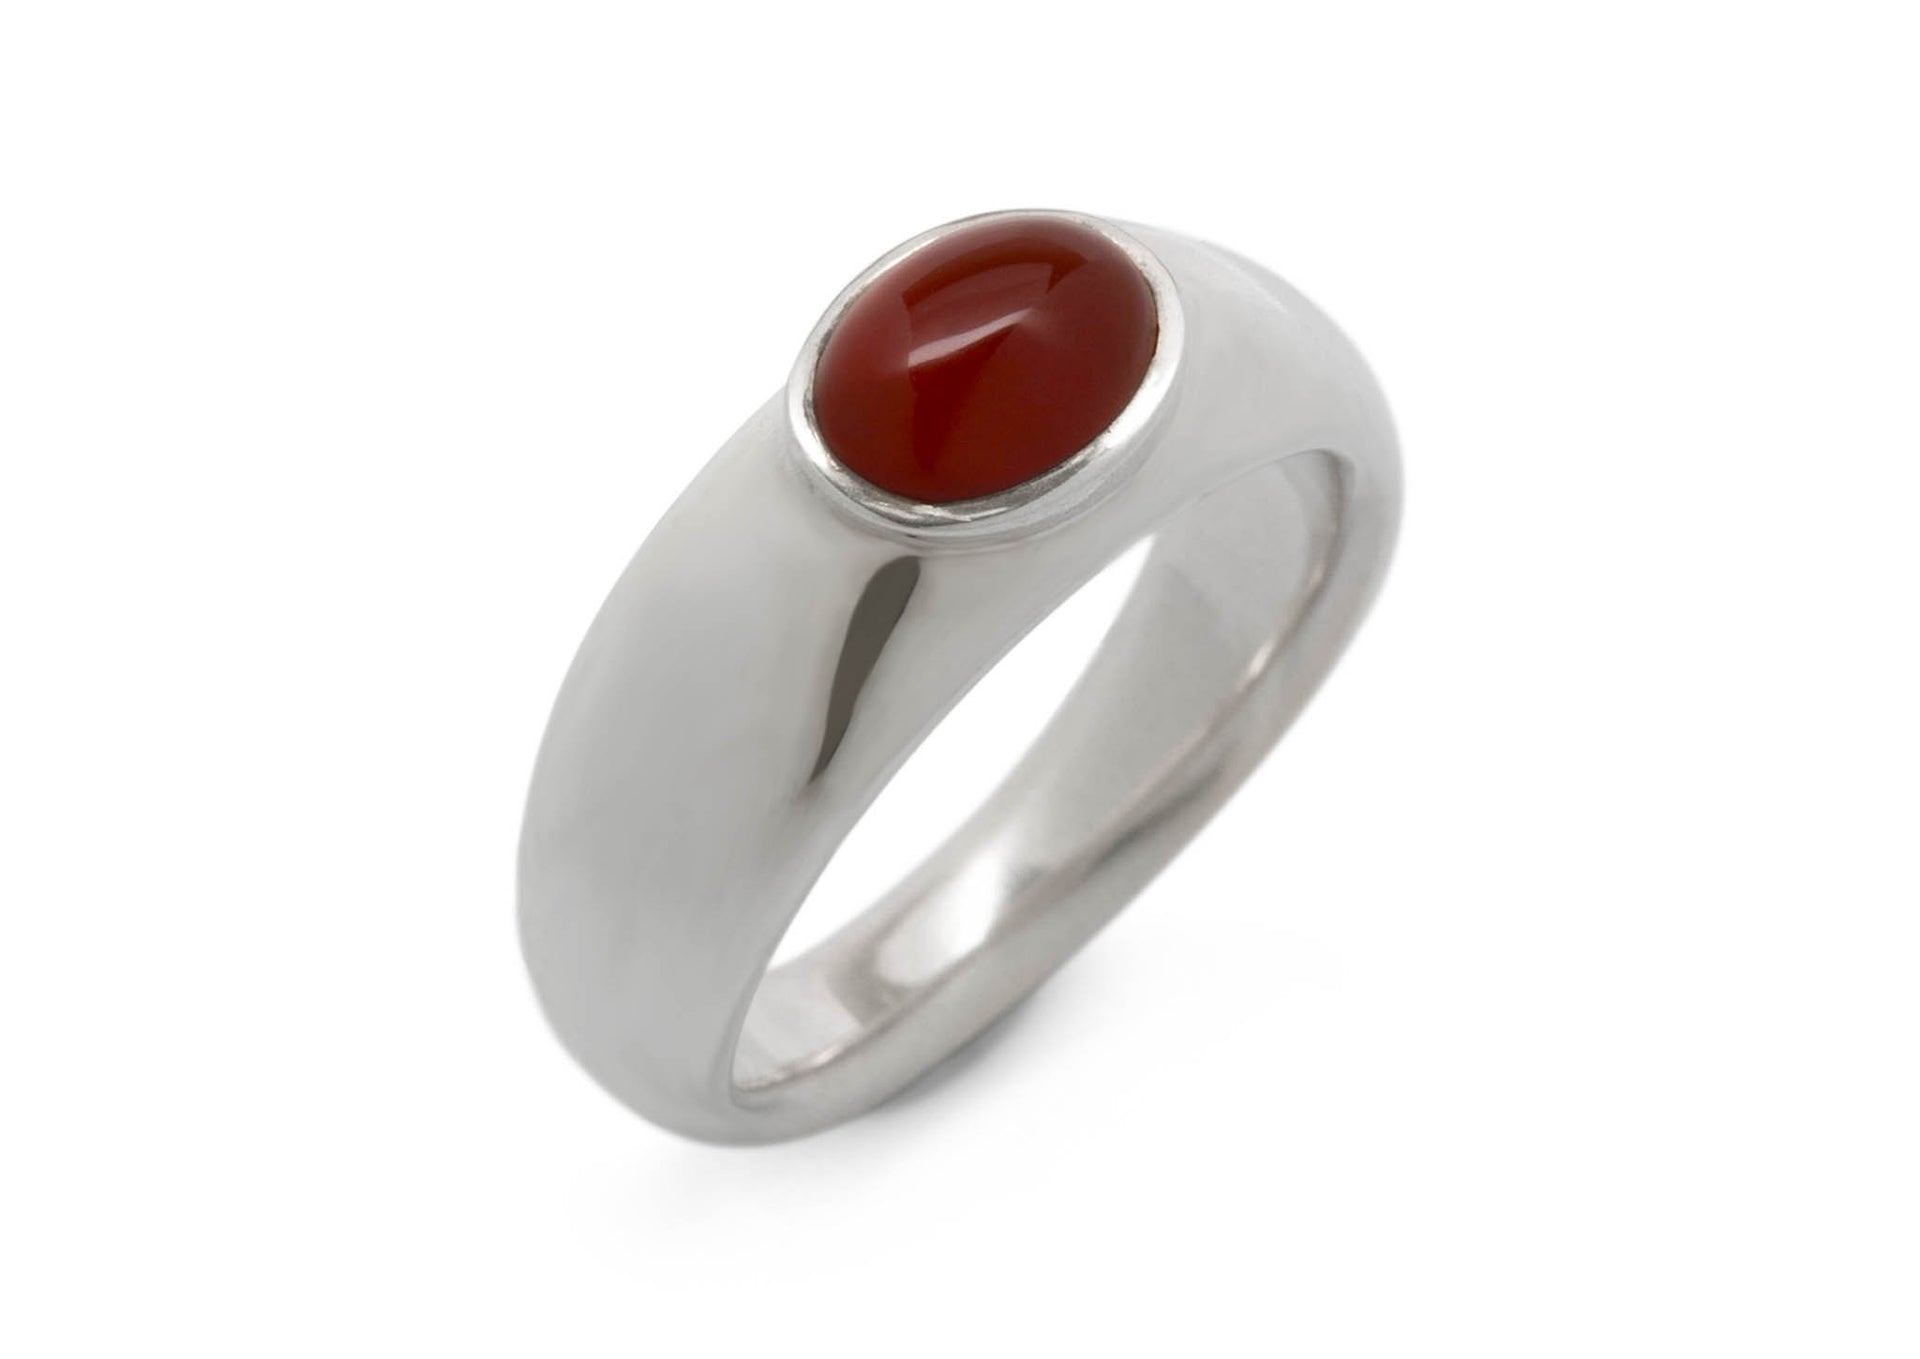 Oval Cabochon Gemstone Ring, Sterling Silver